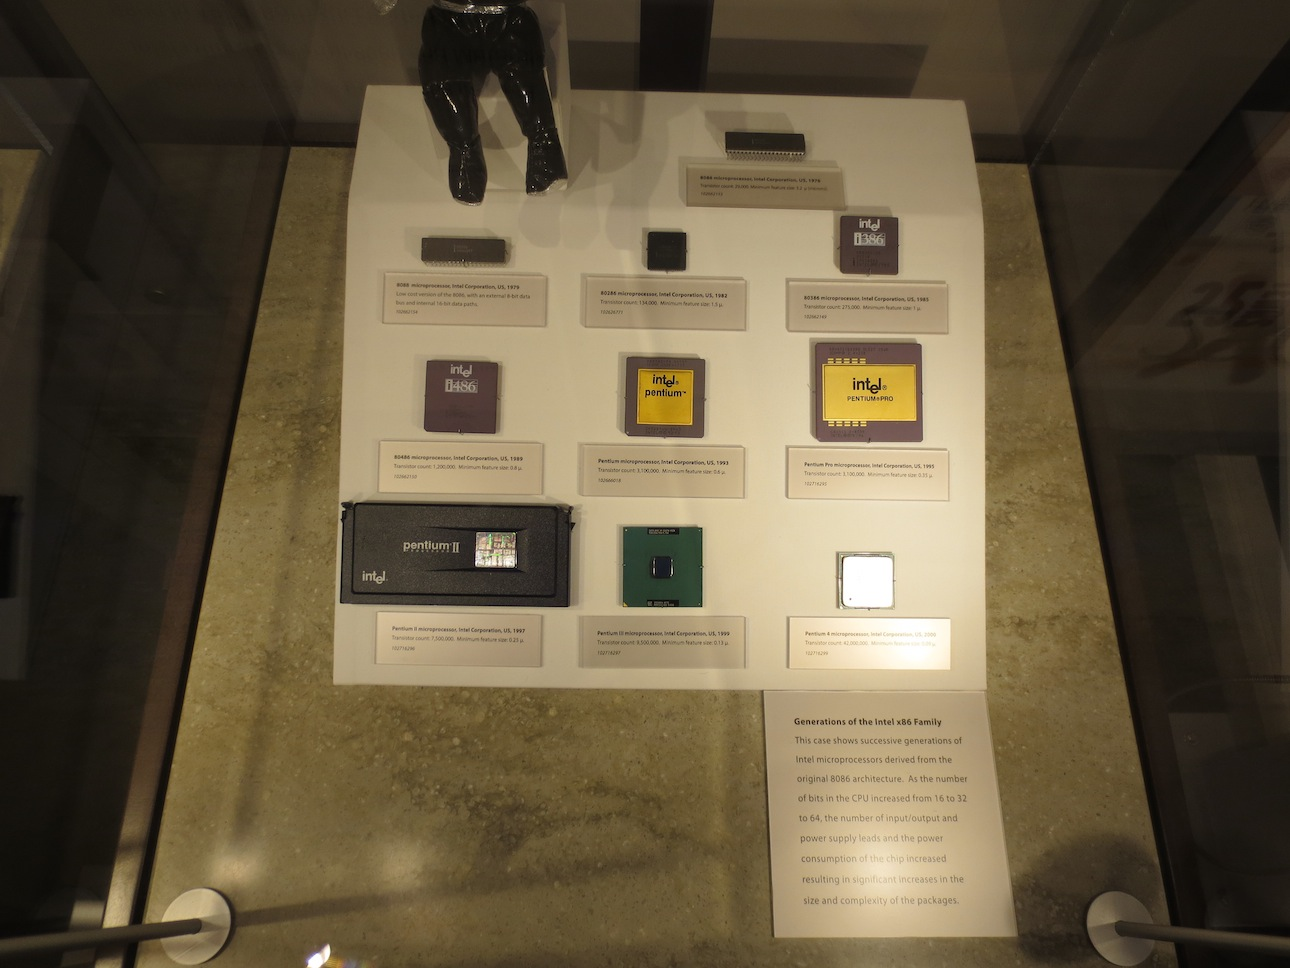 Sample set of Intel processors.